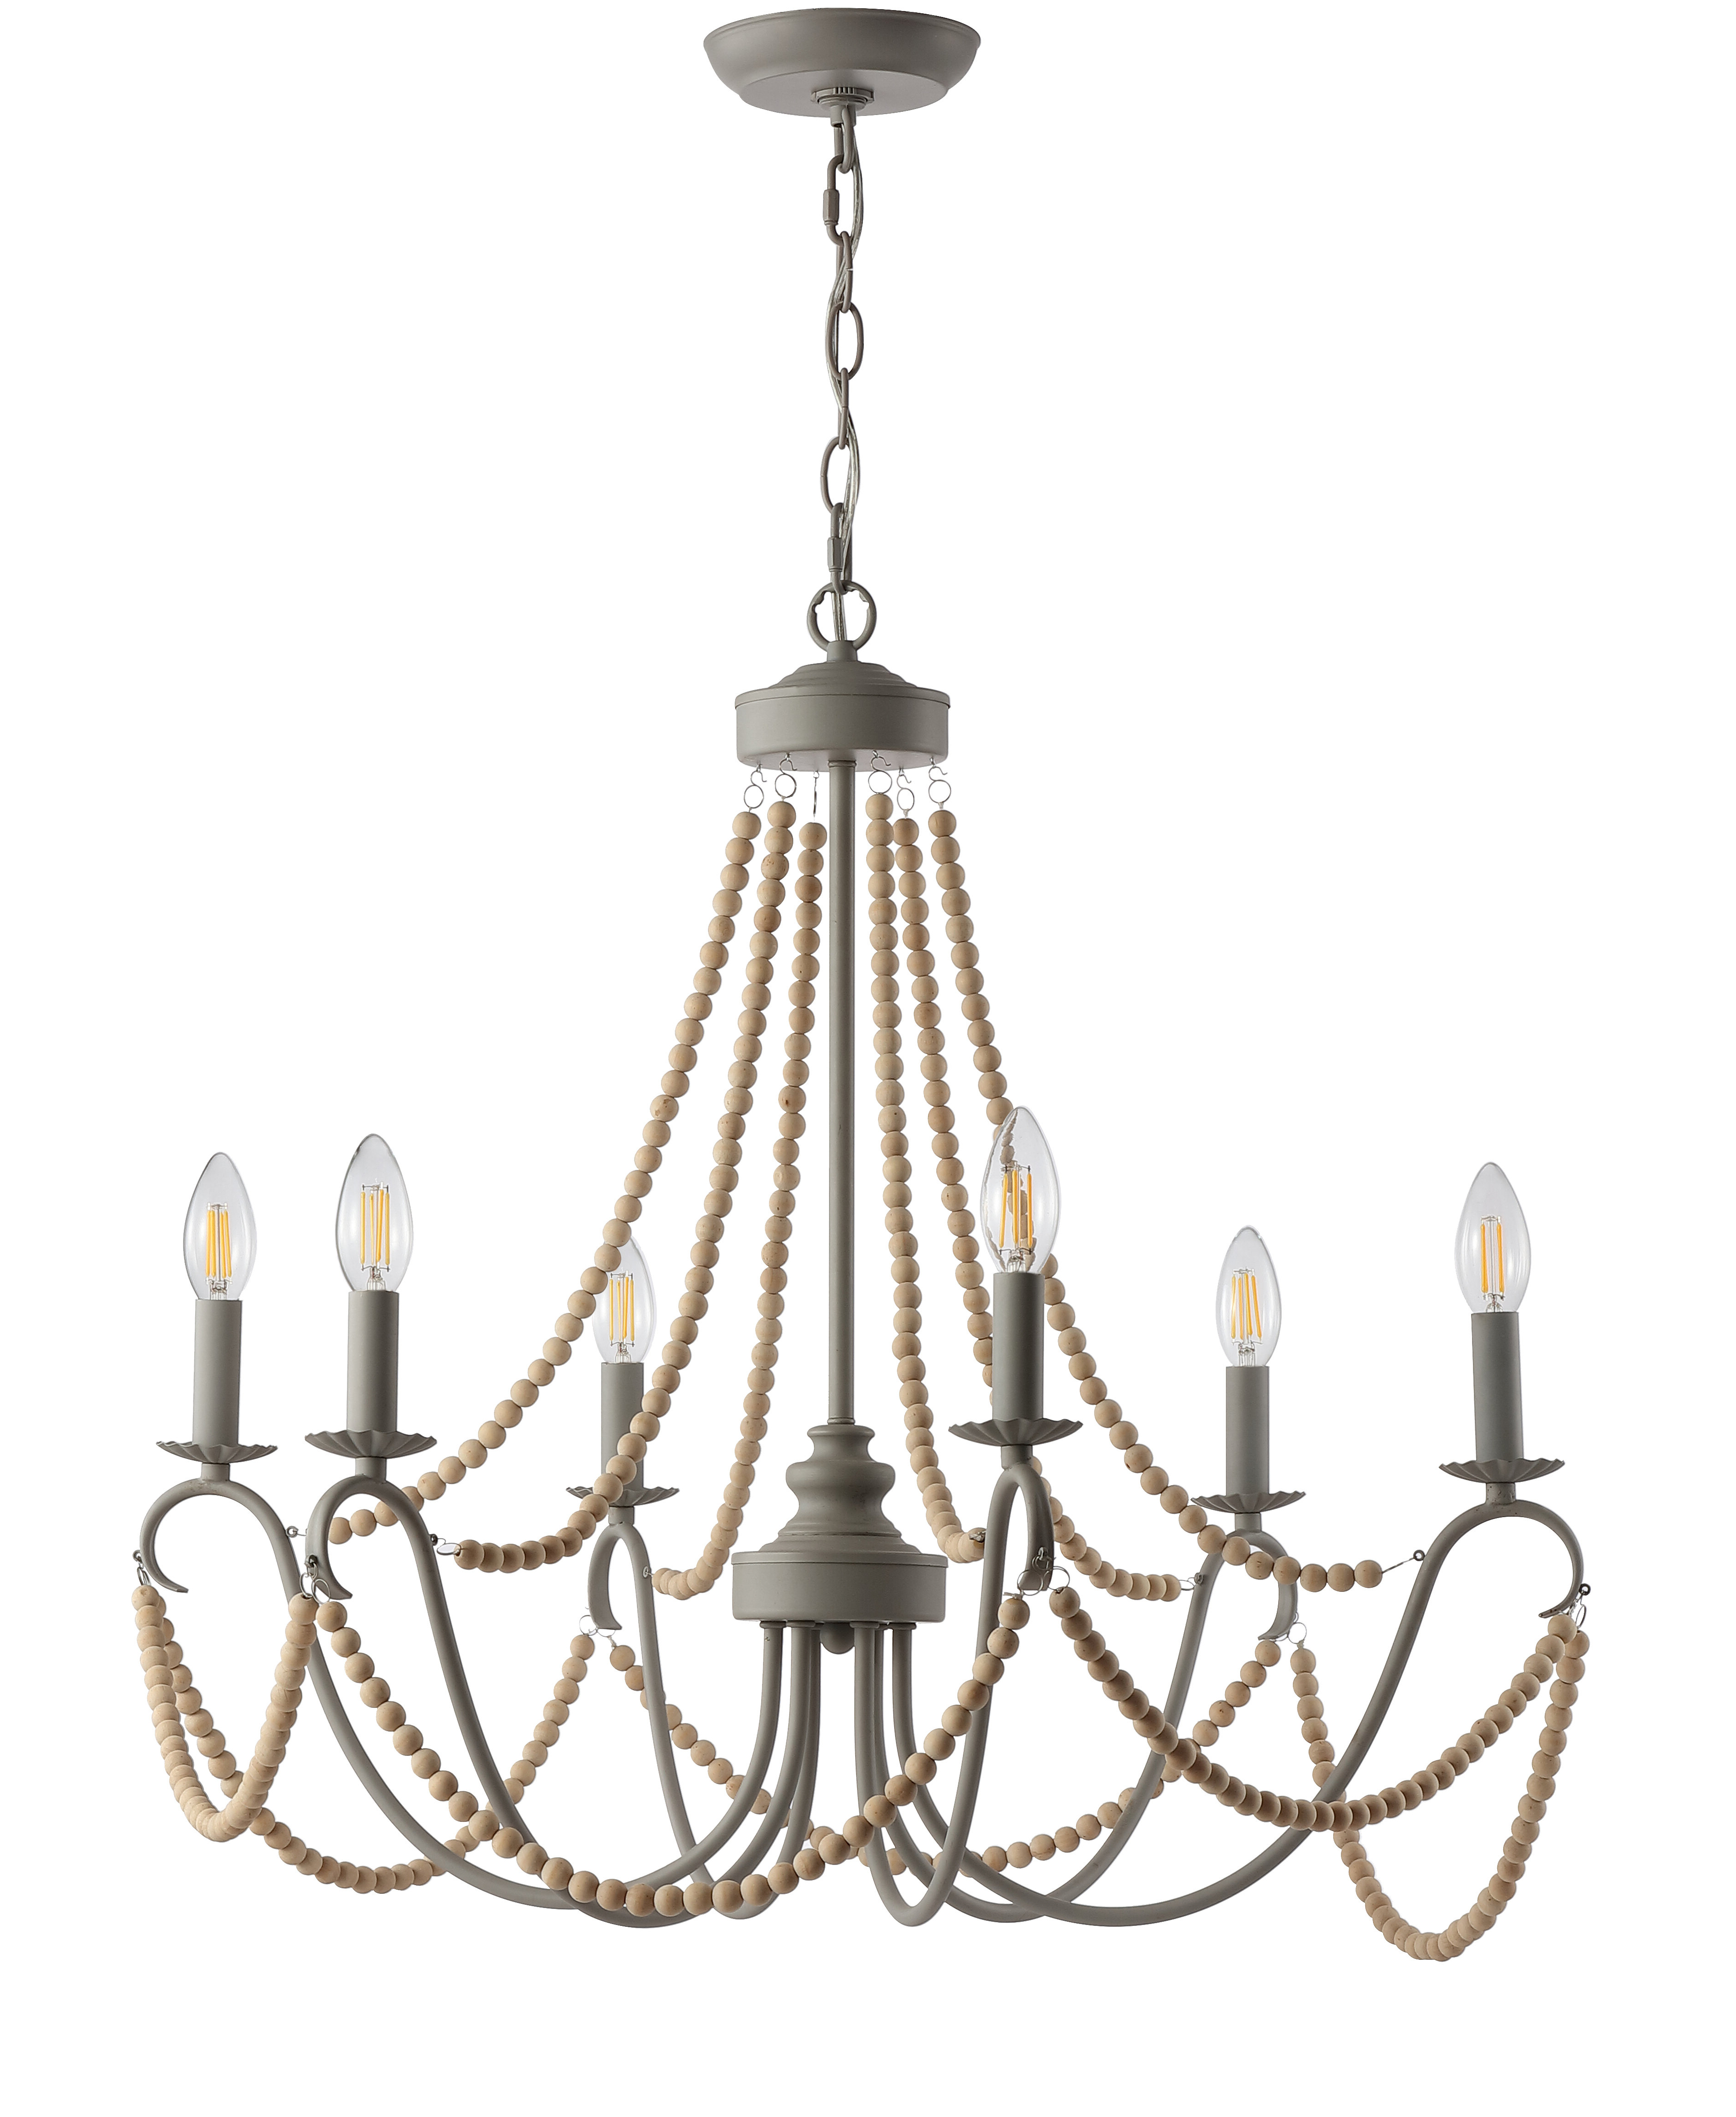 Well Known Diaz 6 Light Candle Style Chandeliers With One Allium Way Carnes 6 Light Candle Style Chandelier (View 24 of 25)